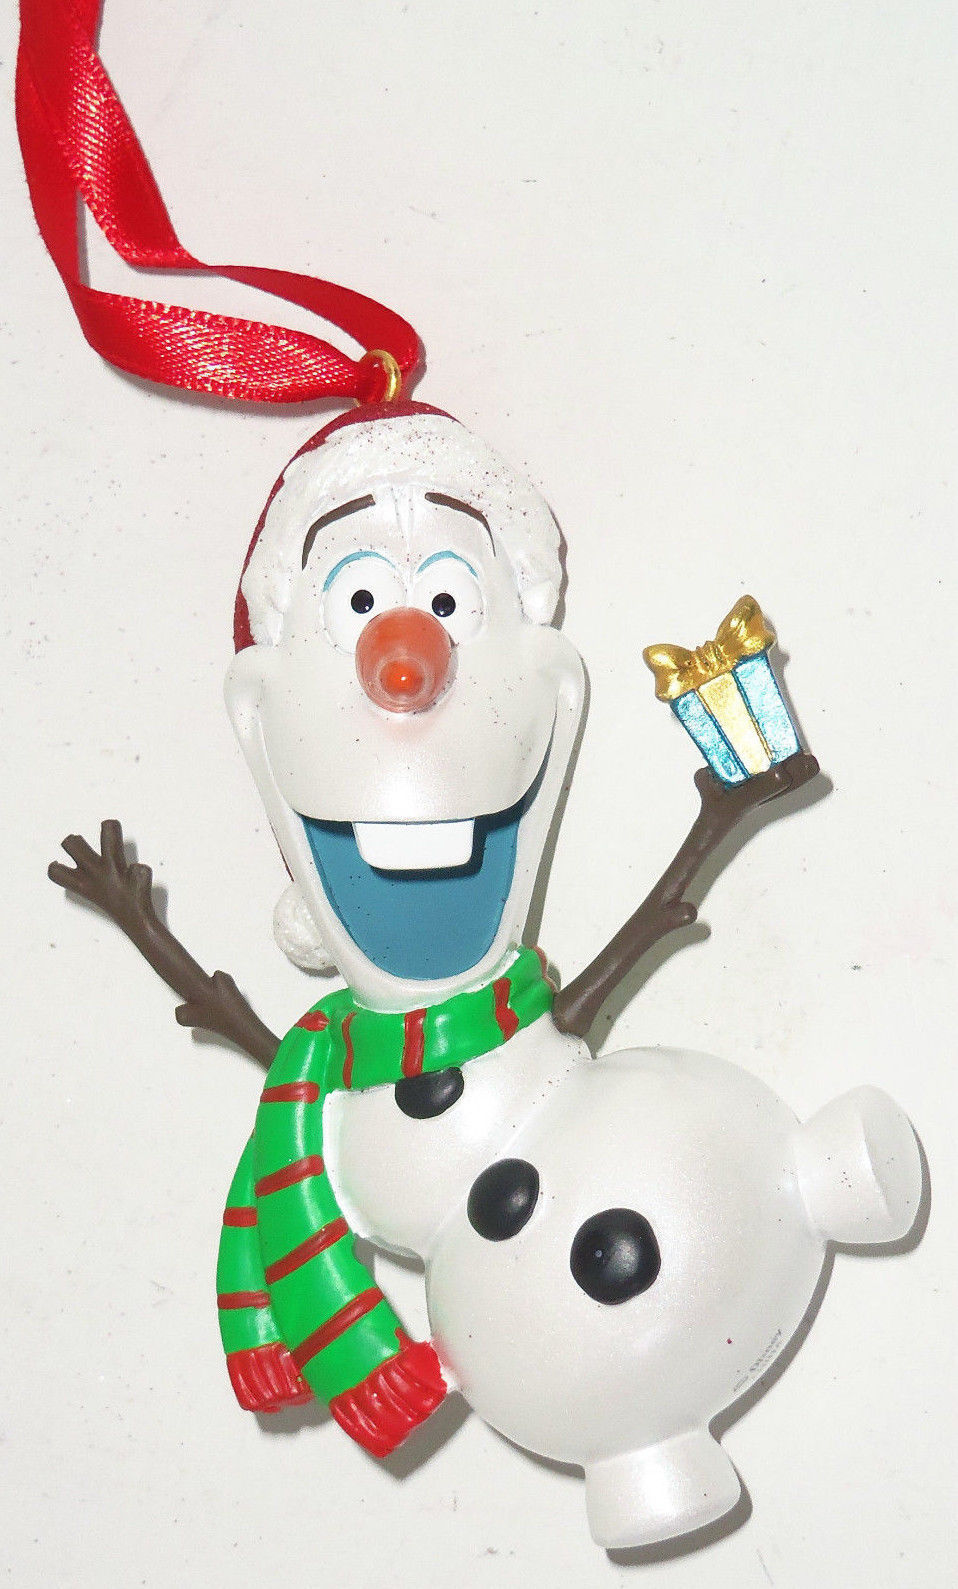 Disney Frozen Olaf Ornament Christmas Tree and similar items